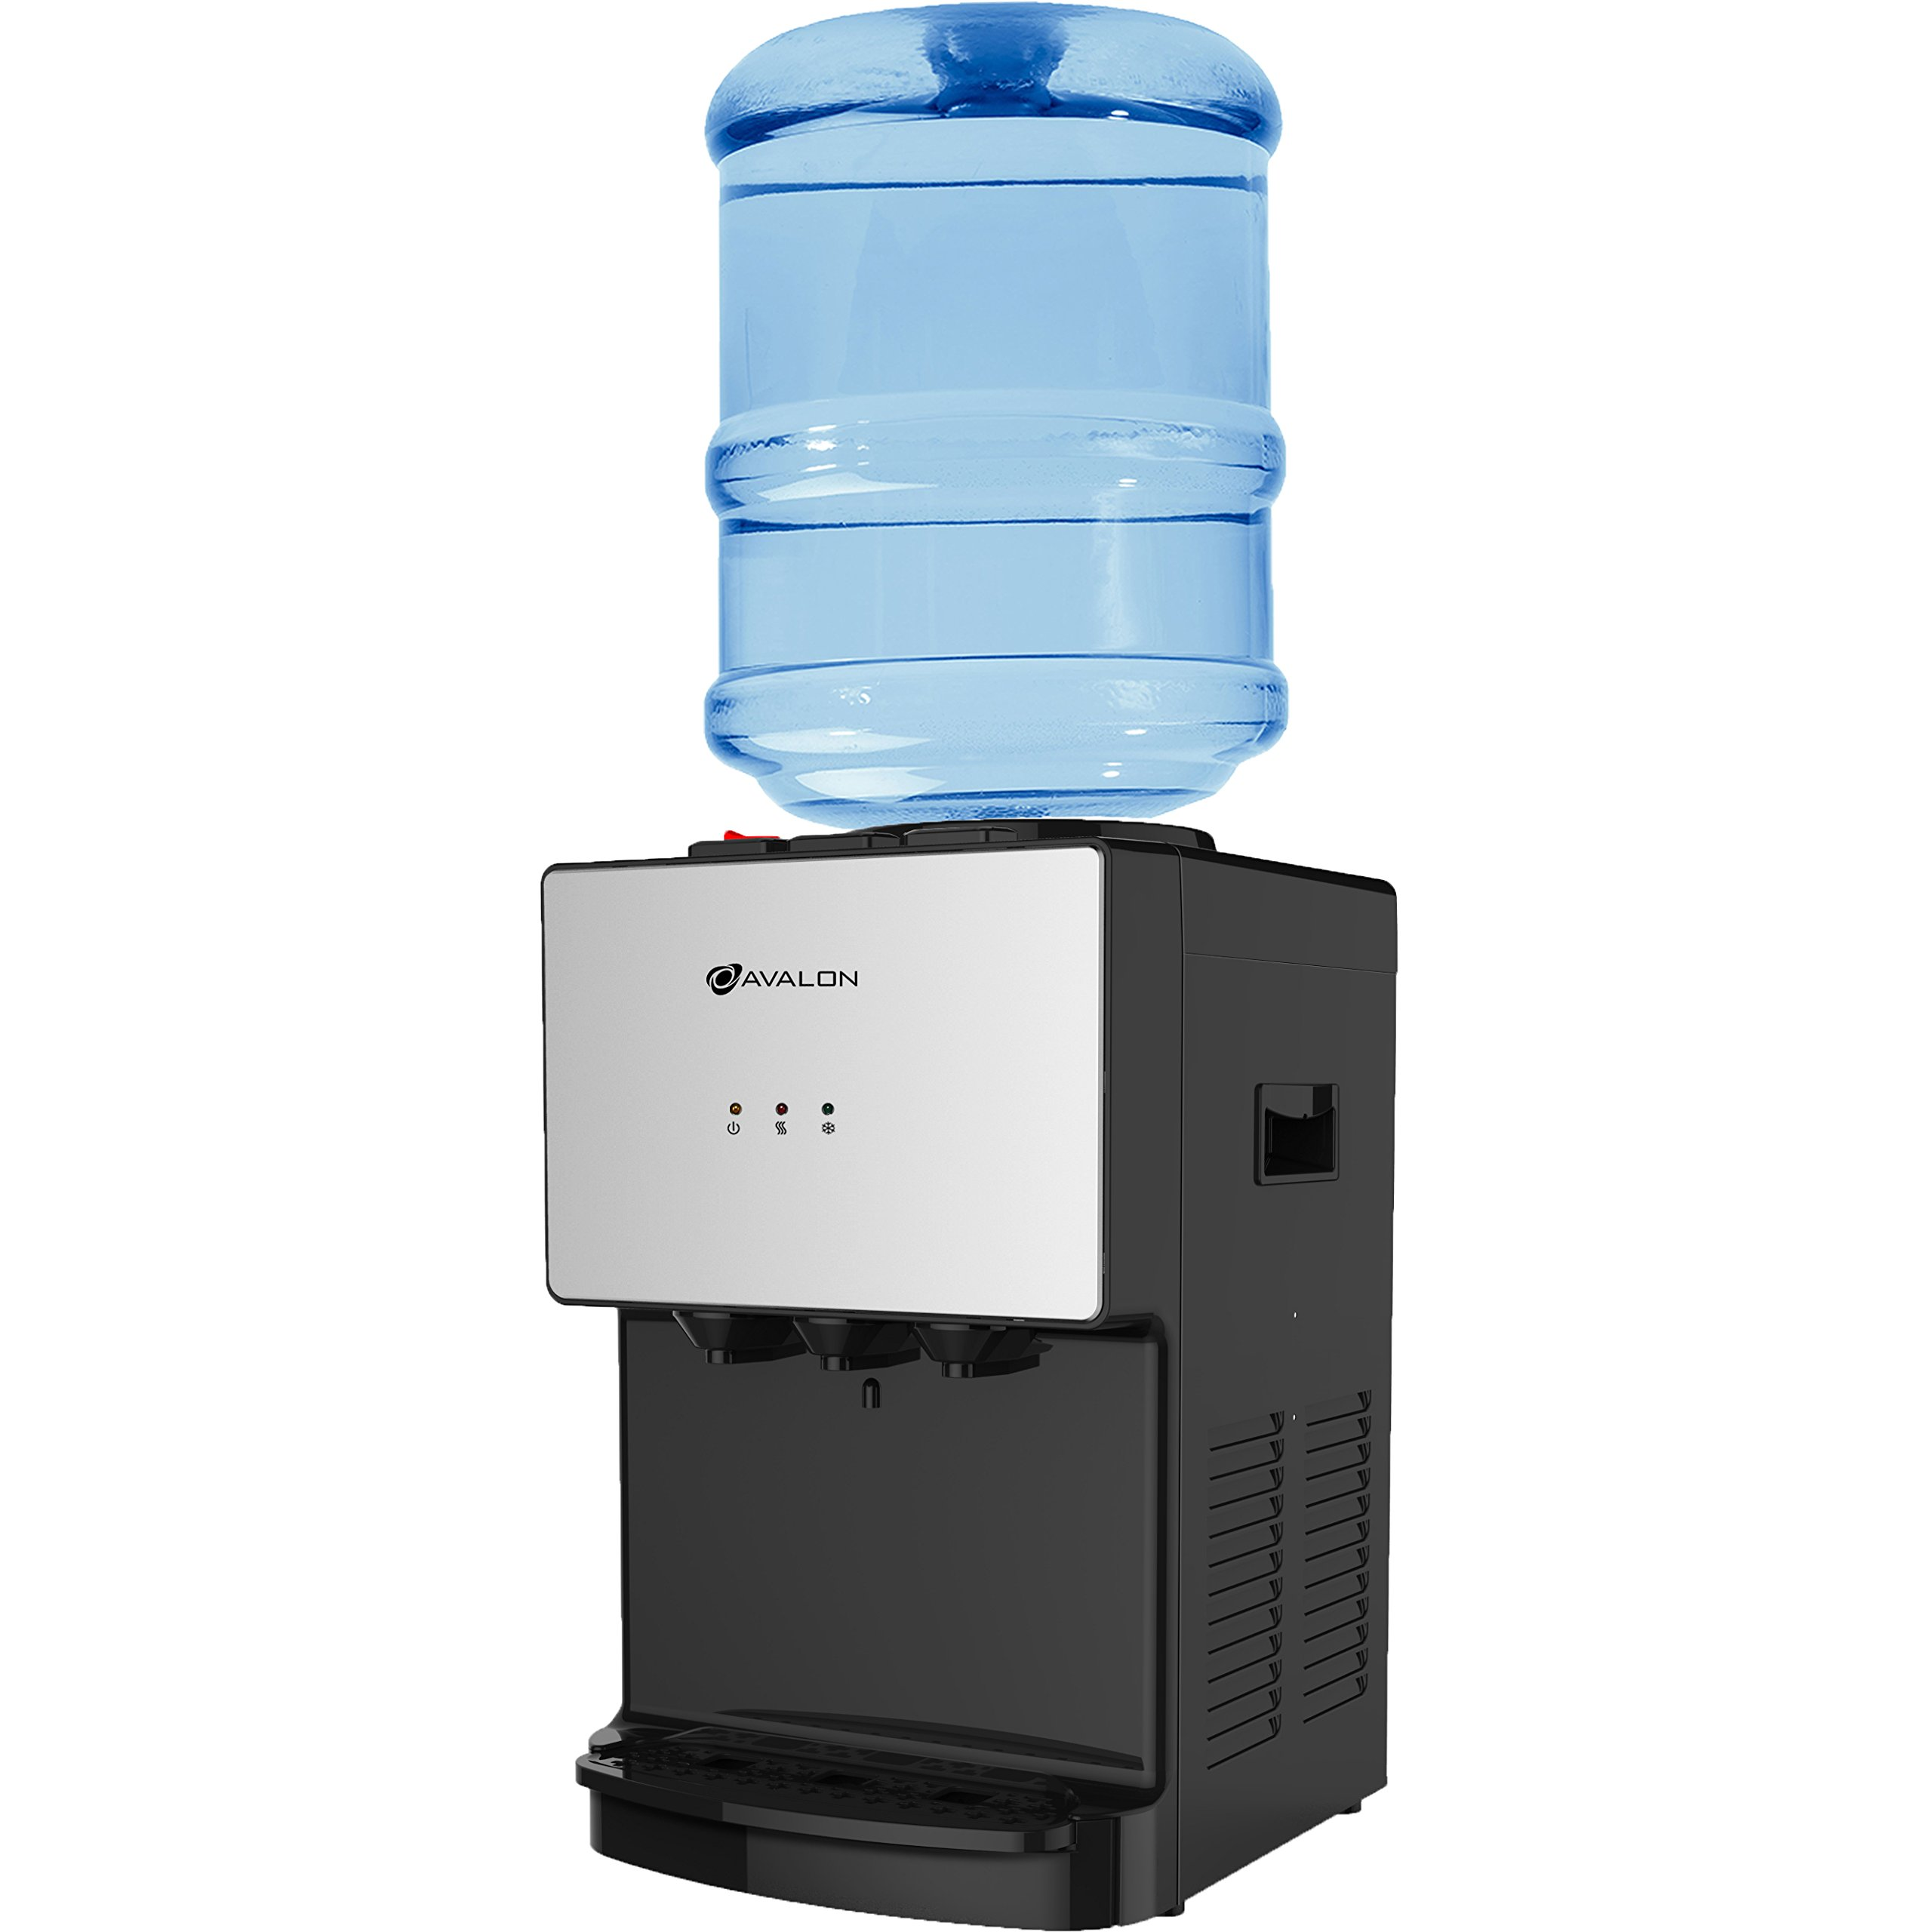 Avalon Premium Hot/Cold Top Loading Countertop Water Cooler Dispenser With Child Safety Lock. UL/Energy Star Approved (Stainless-Steel)